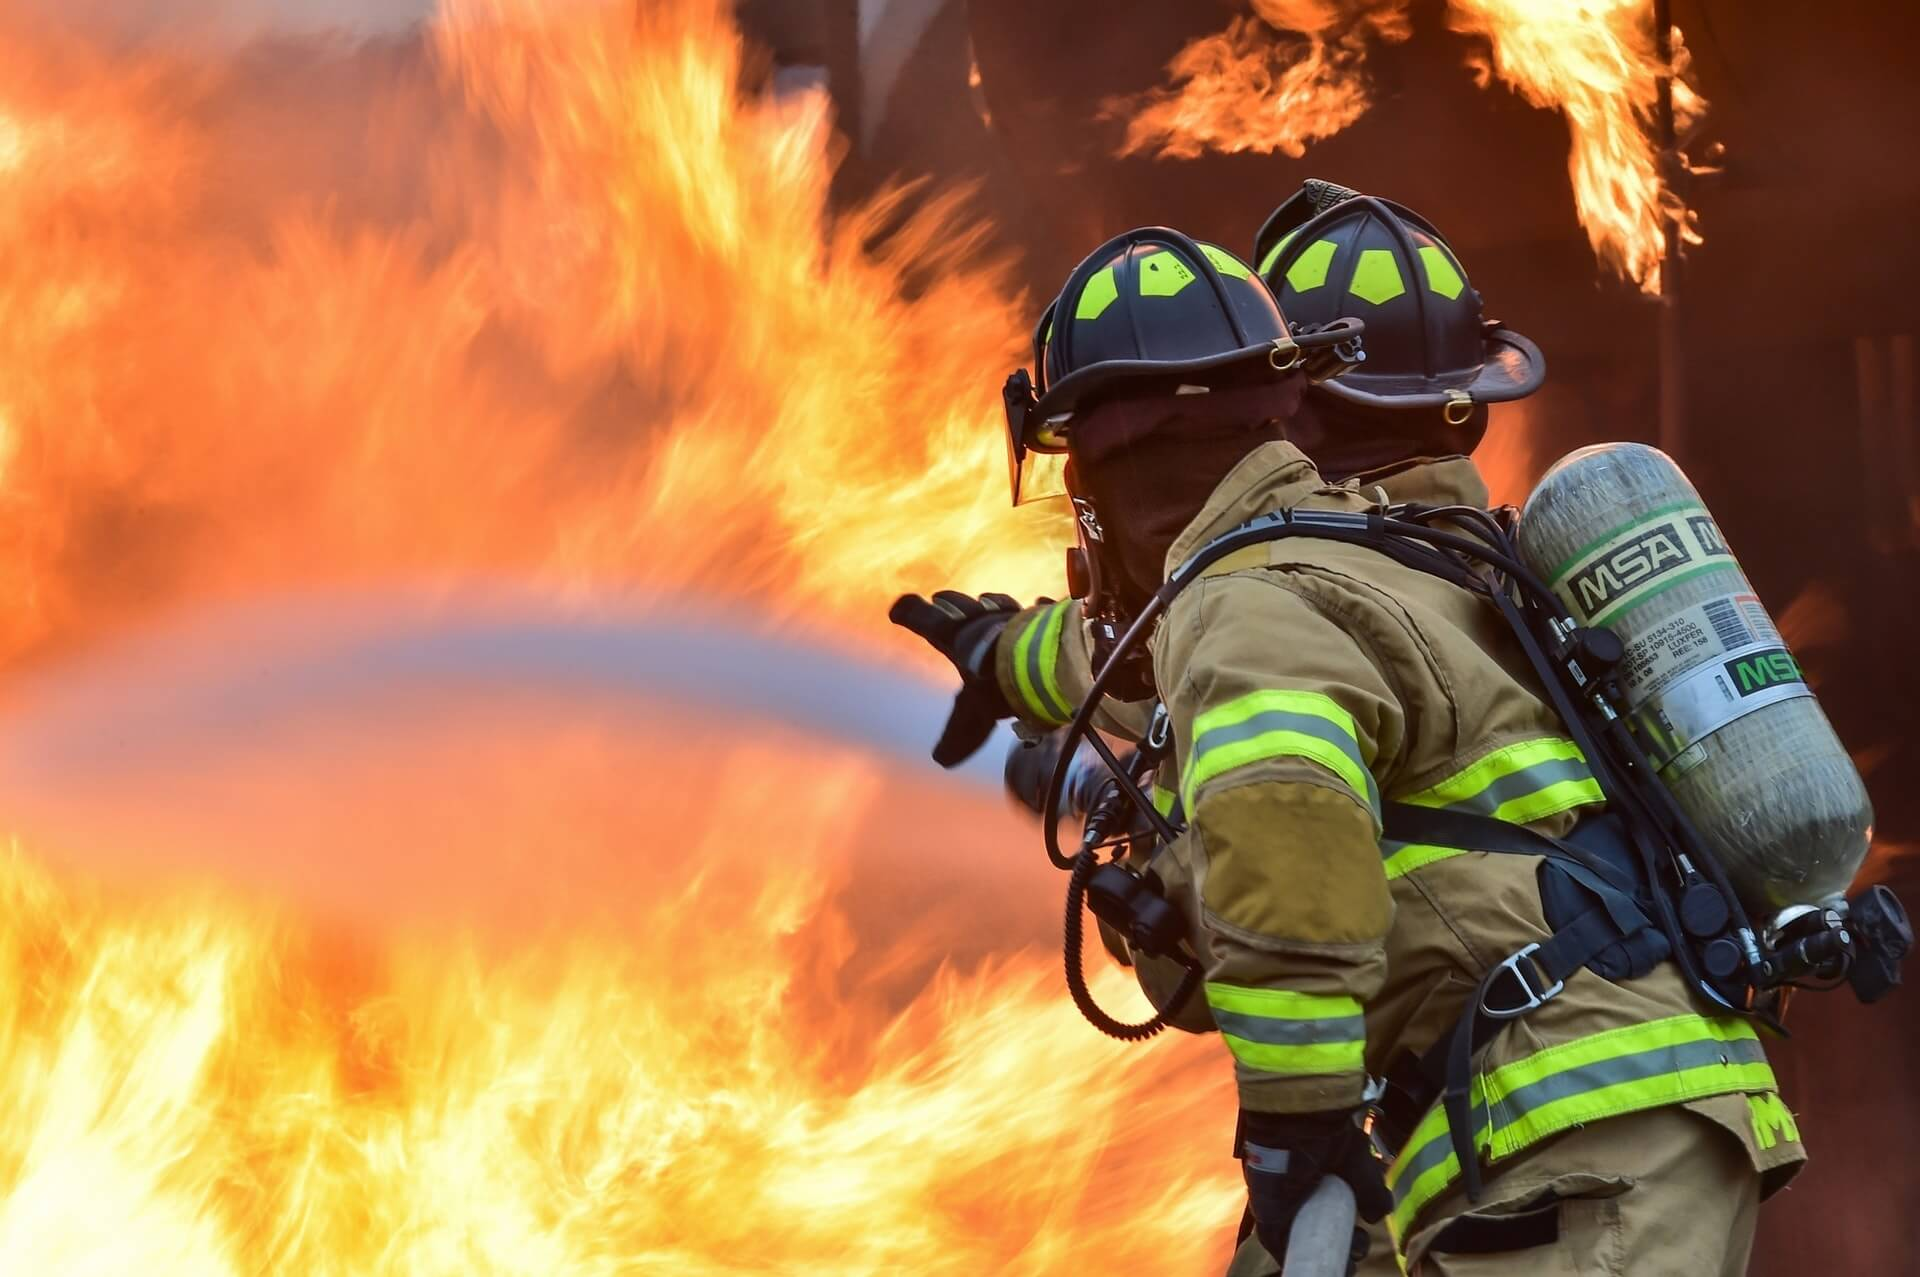 Protecting Hot Work Operations Areas in Your Construction Fire Safety Plan